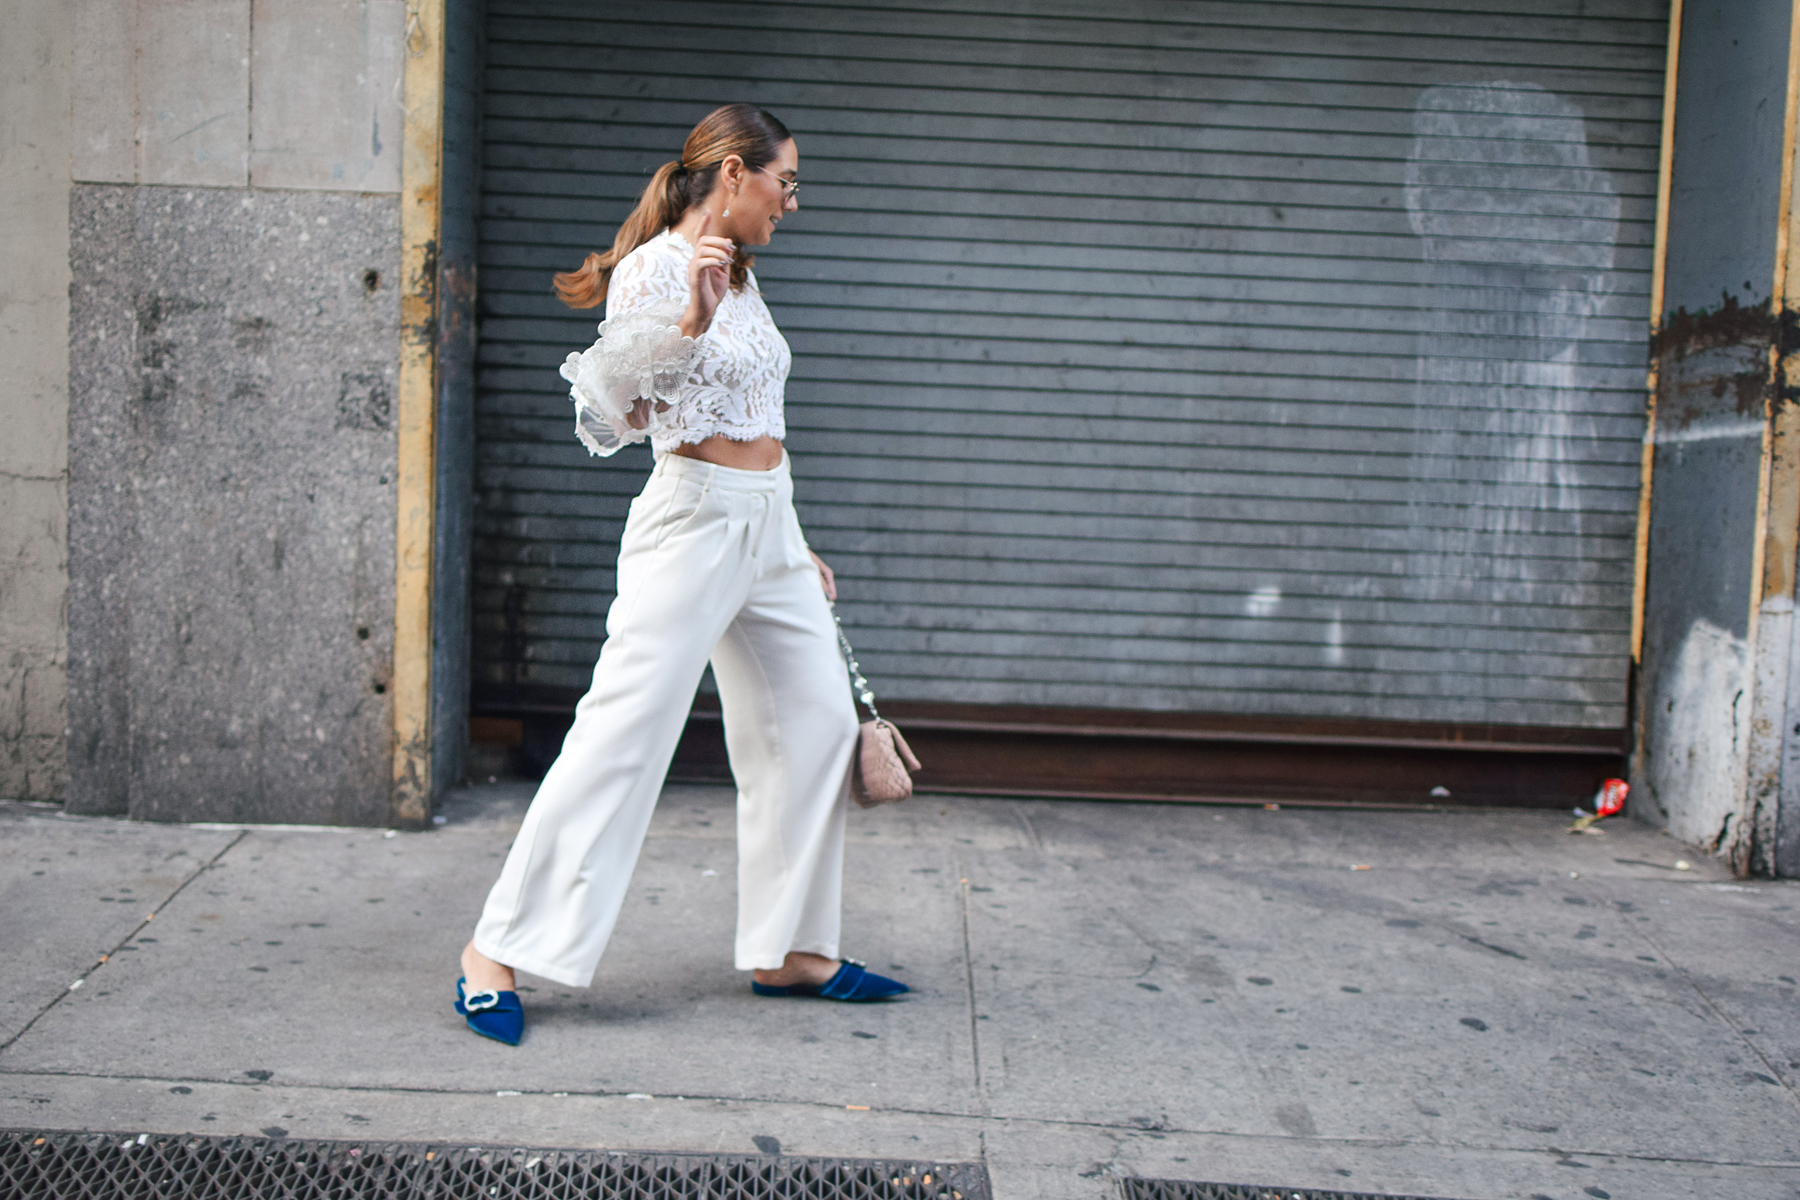 nyfw-streetstyle-outfit-lace-ruffle-statement-bell-sleeve-blouse-white-trousers-all-white-prada-royal-blue-slides-blush-accessories-candid-shot